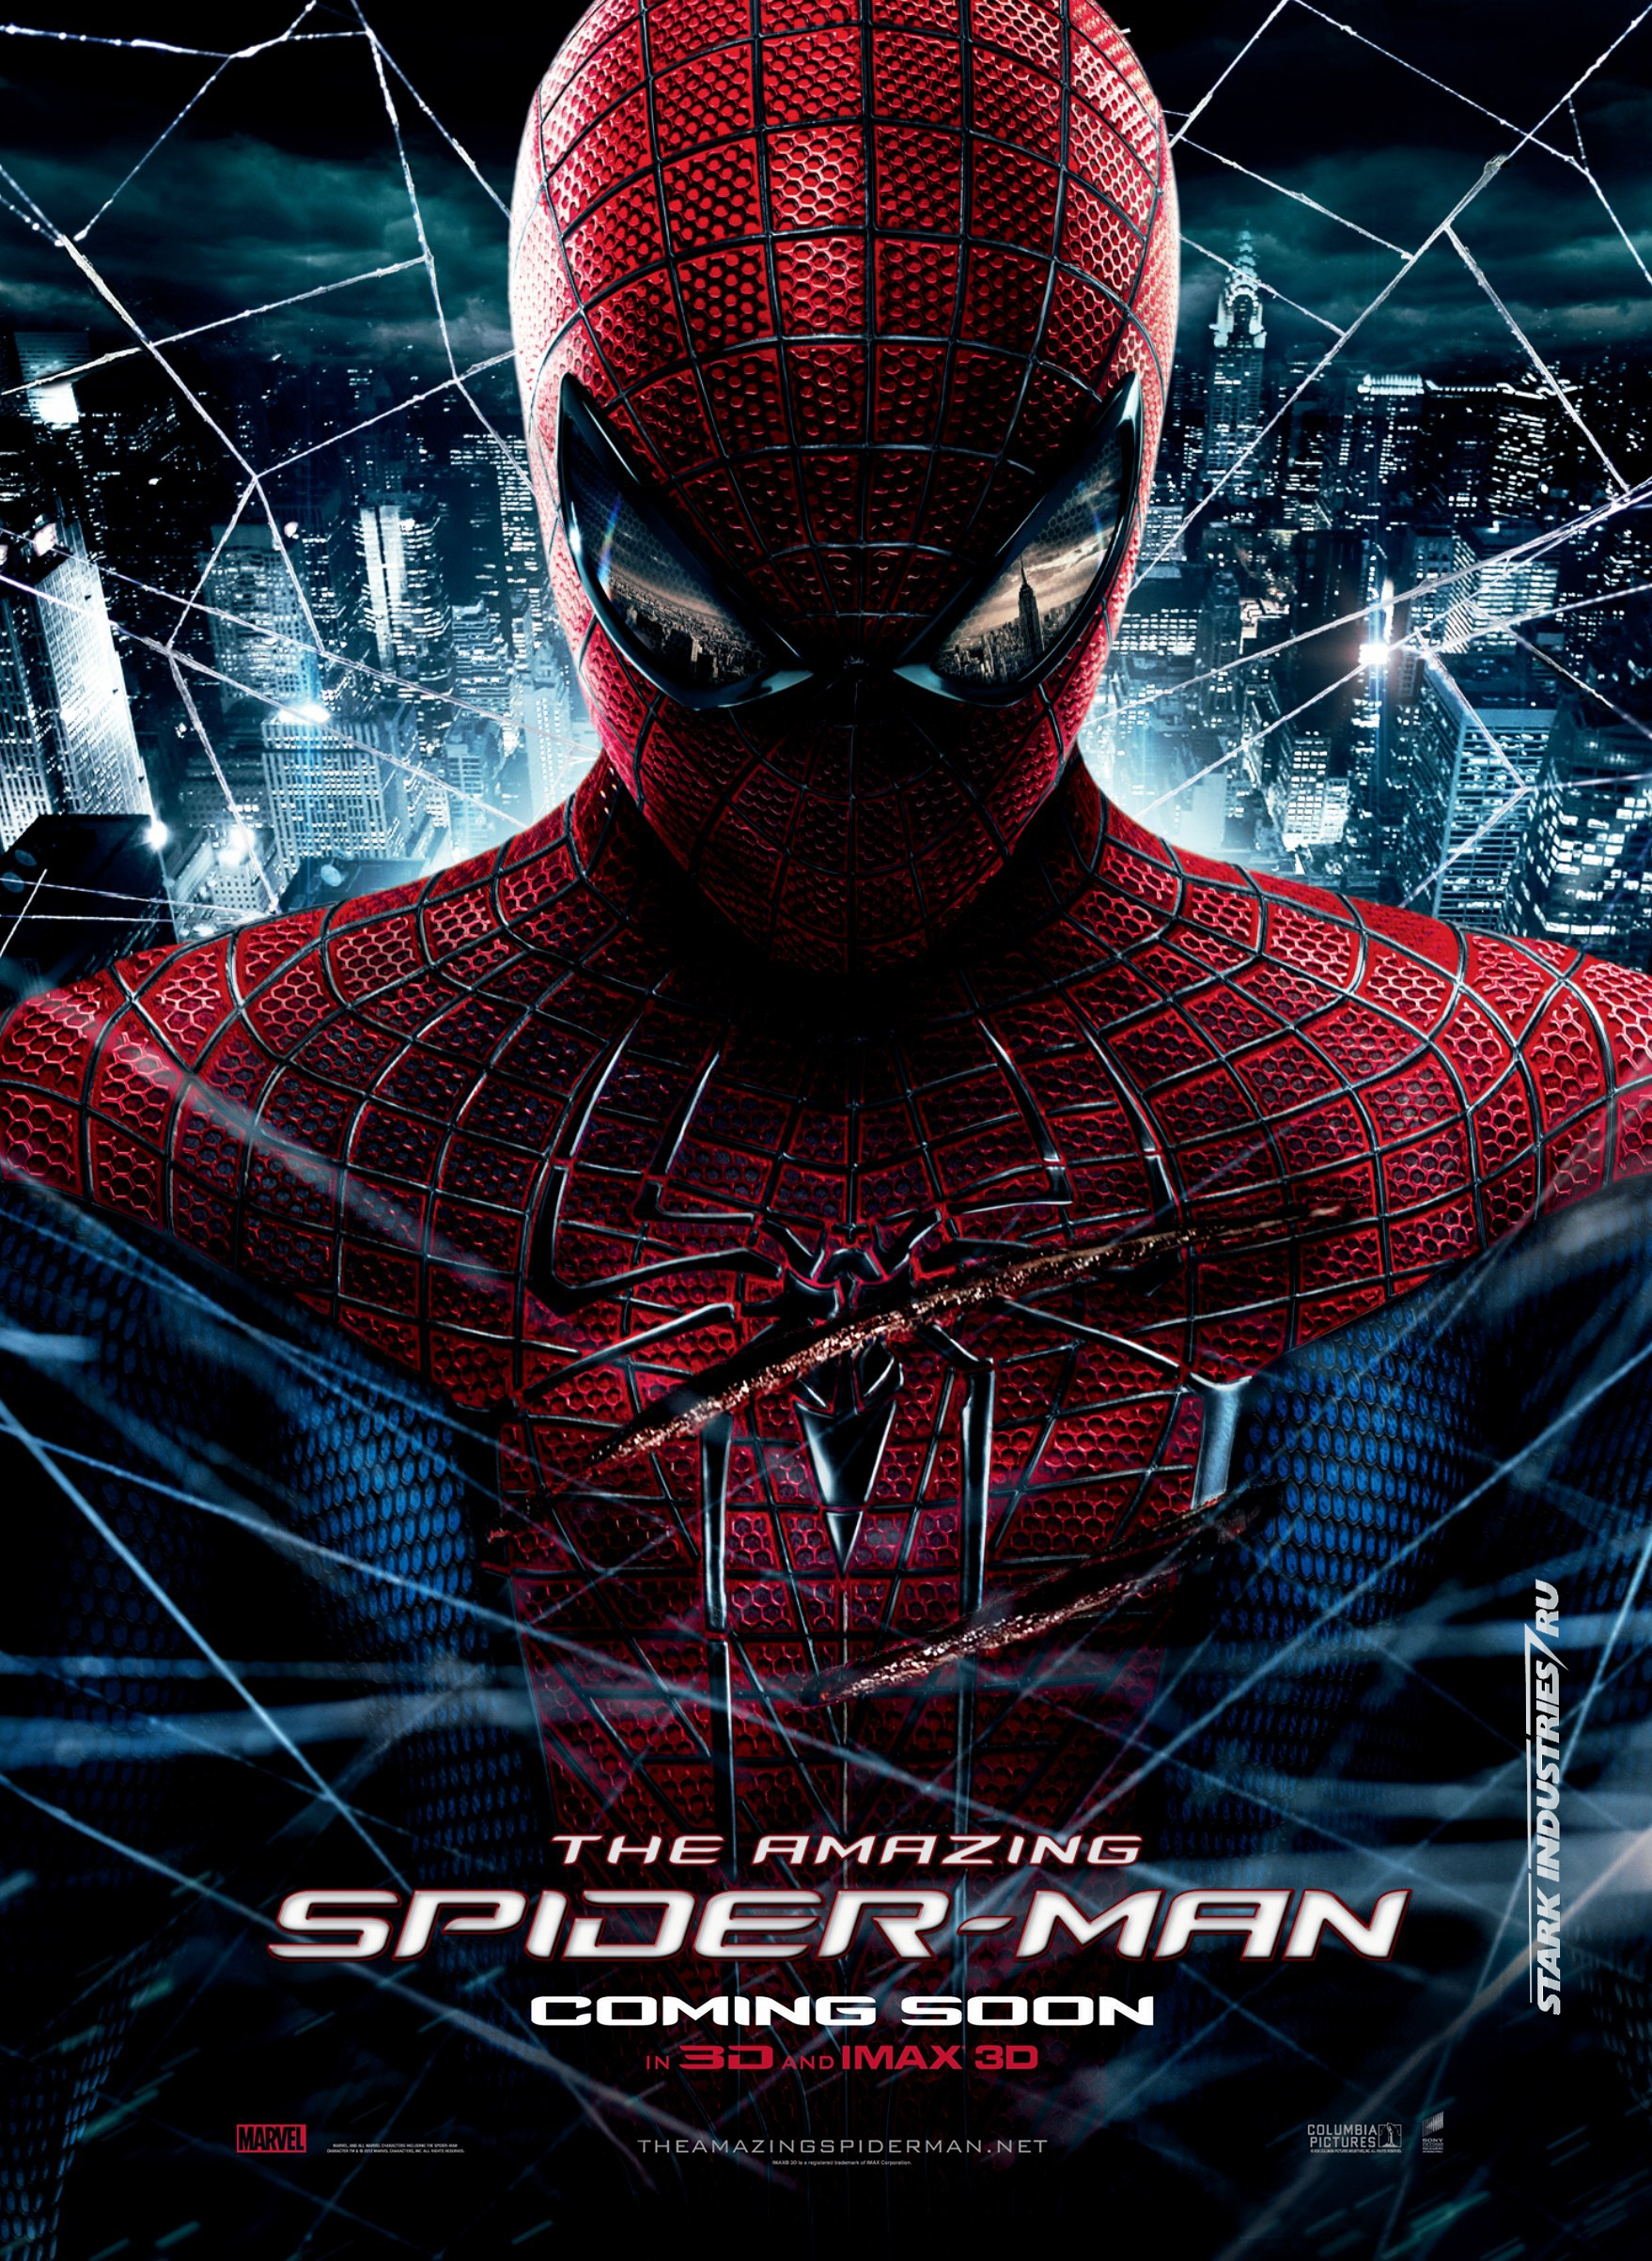 The Amazing Spider Man Review – Dexter Morrill